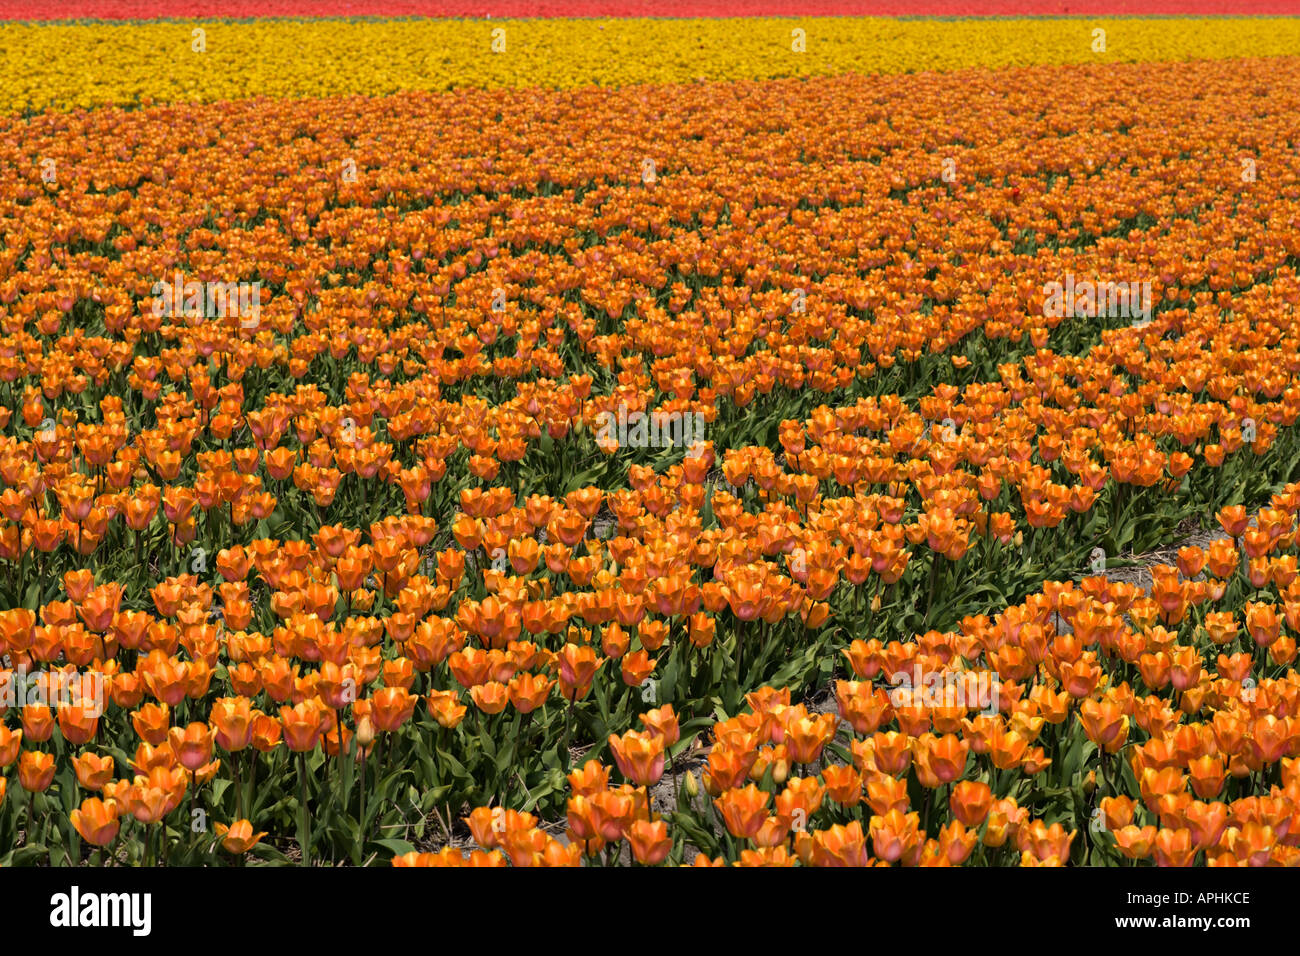 Springtime in Holland. Netherlands. Endless tulip fields. - Stock Image